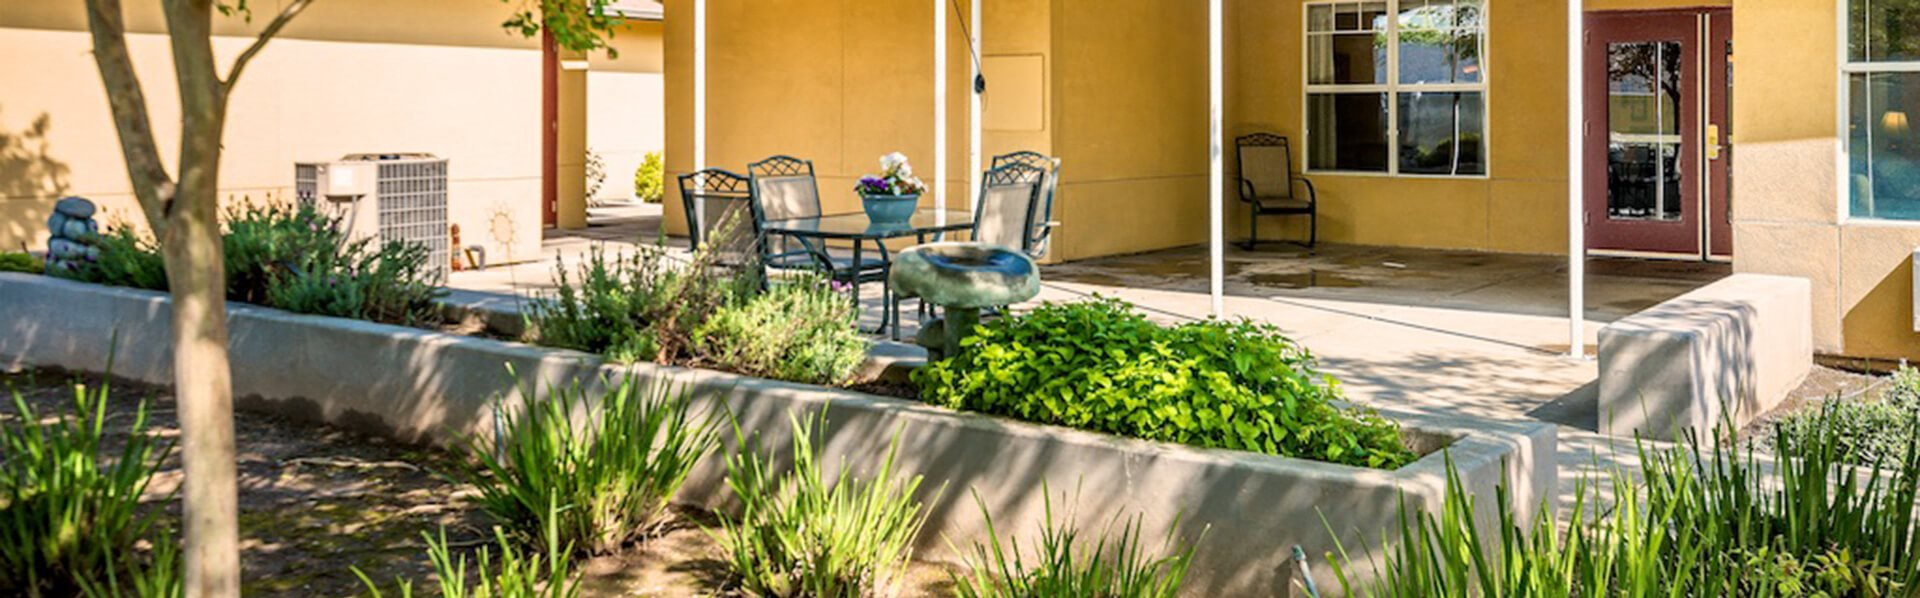 Immaculate landscaping at Pacifica Senior Living Modesto, California, 95355